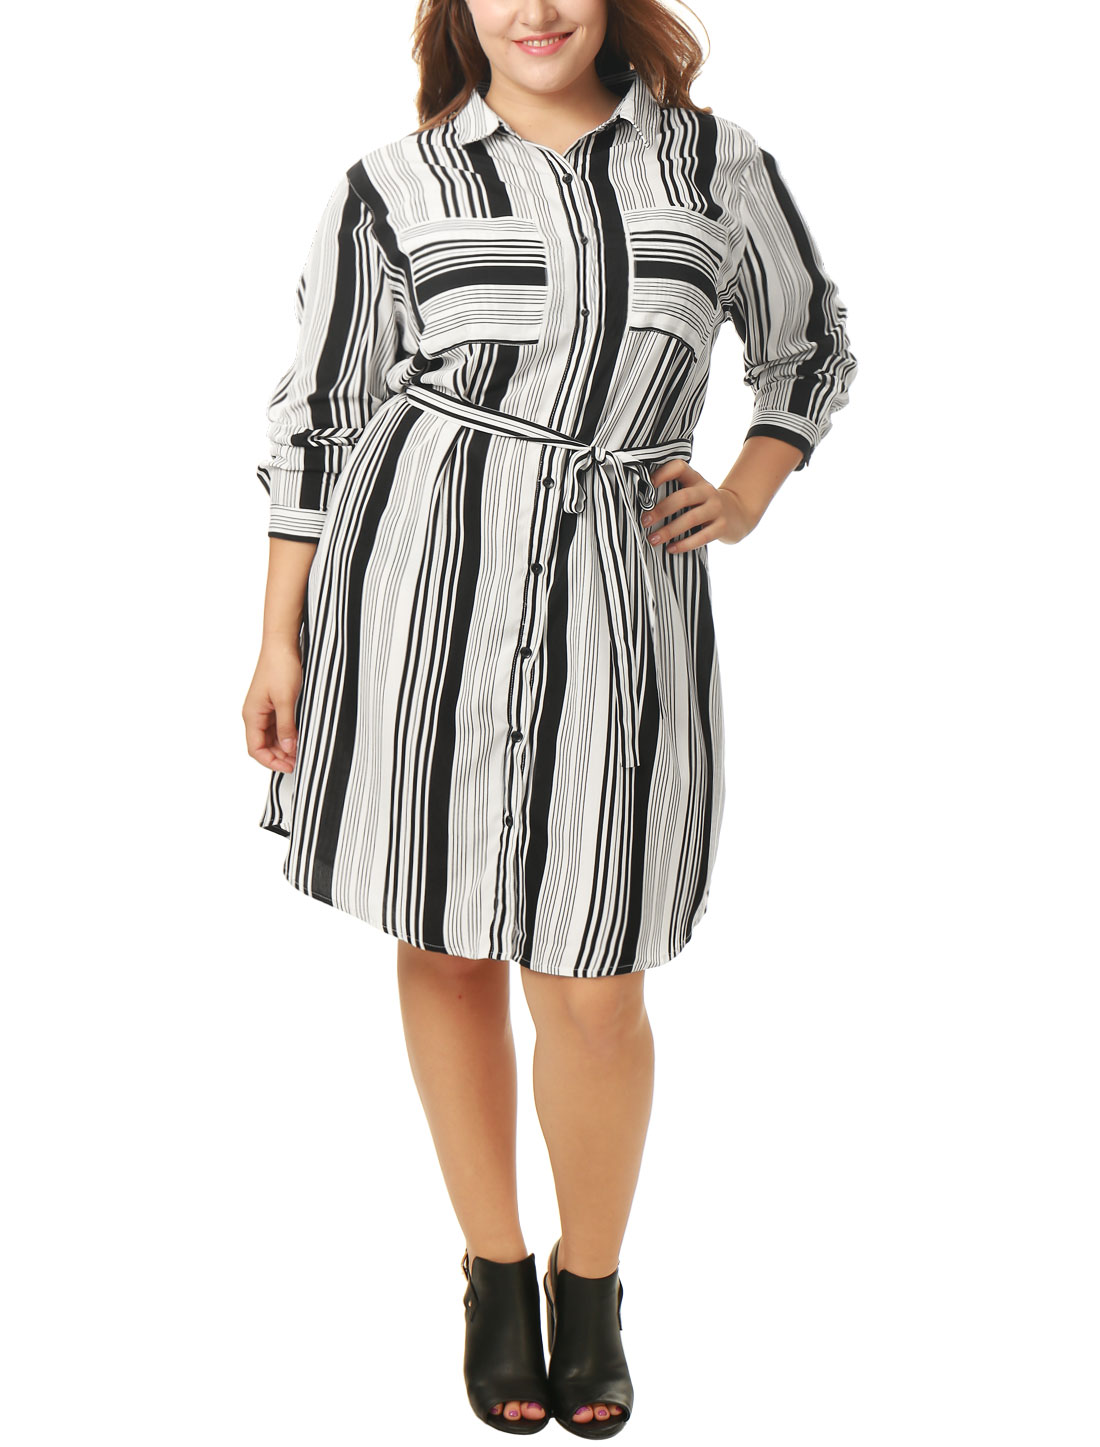 Women Plus Size Striped Tie Waist Long Sleeves Shirt Dress Black White 2X